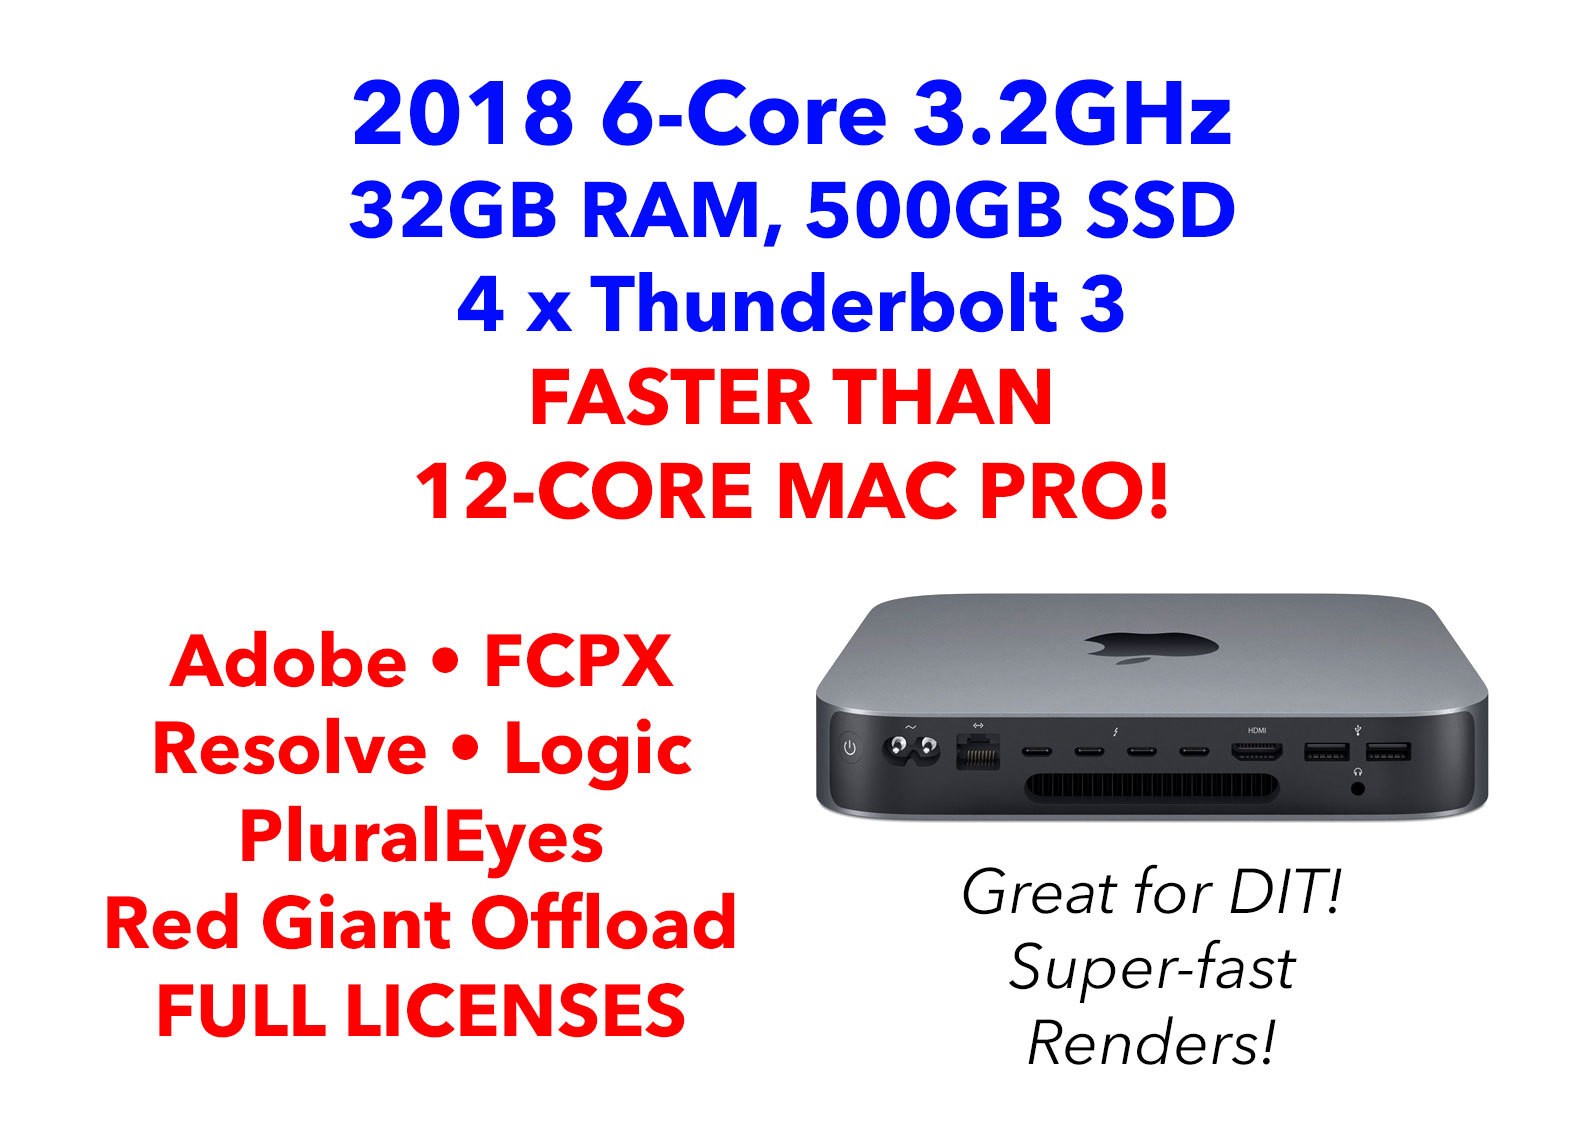 Rent a Apple Mac Mini 2018 6-Core i7 w/ 32GB RAM, Editing Apps